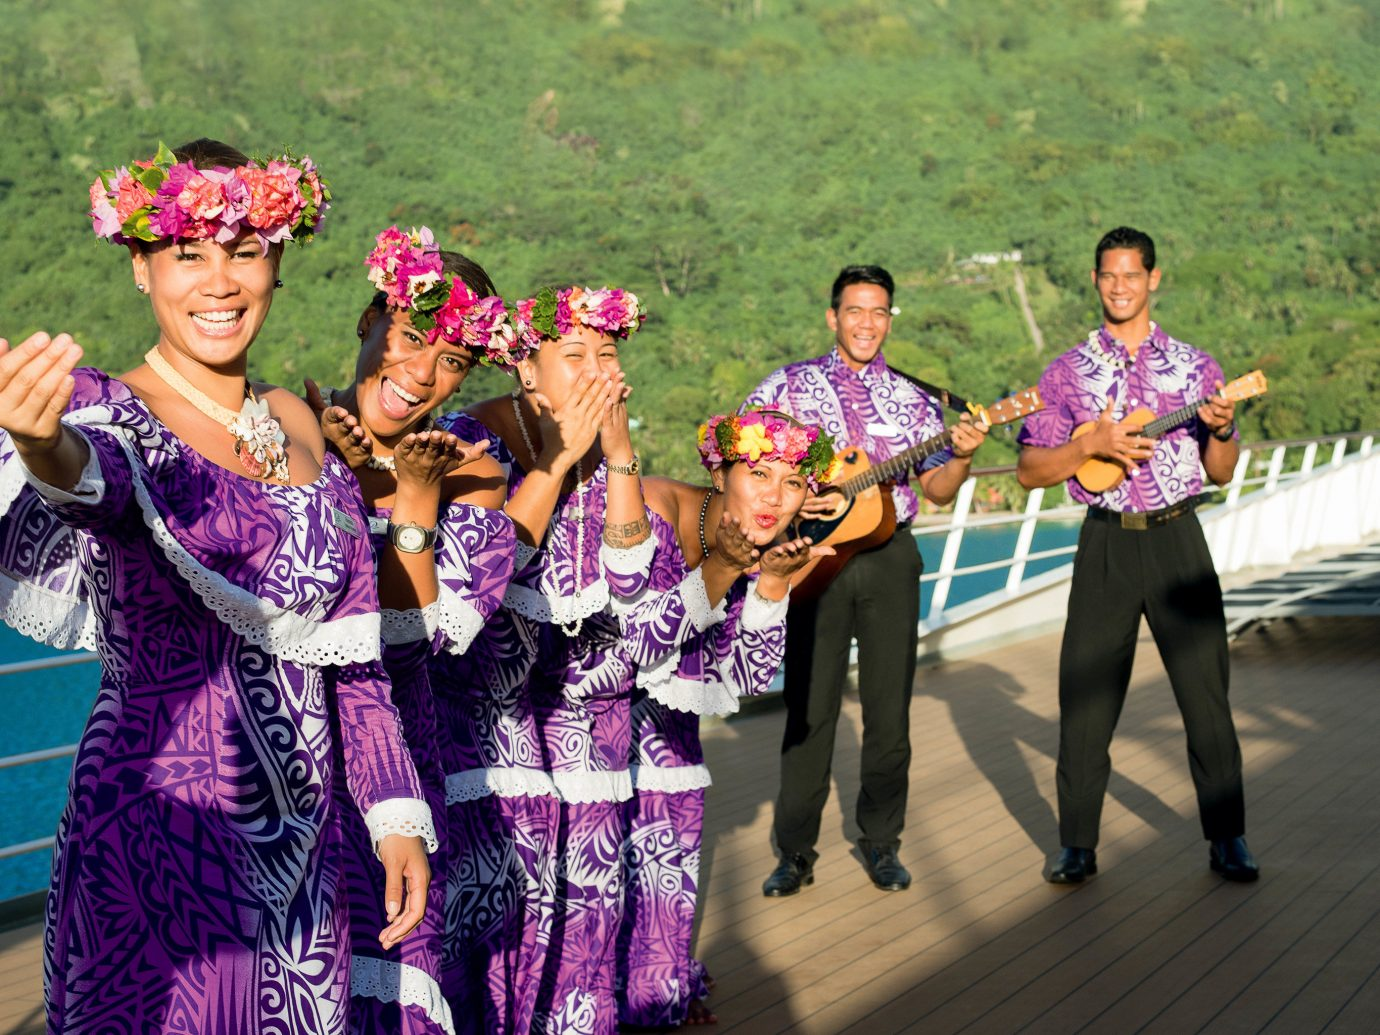 Cruise Travel Luxury Travel Trip Ideas person outdoor purple Sport event tradition dancer fun recreation performing arts dance plant festival